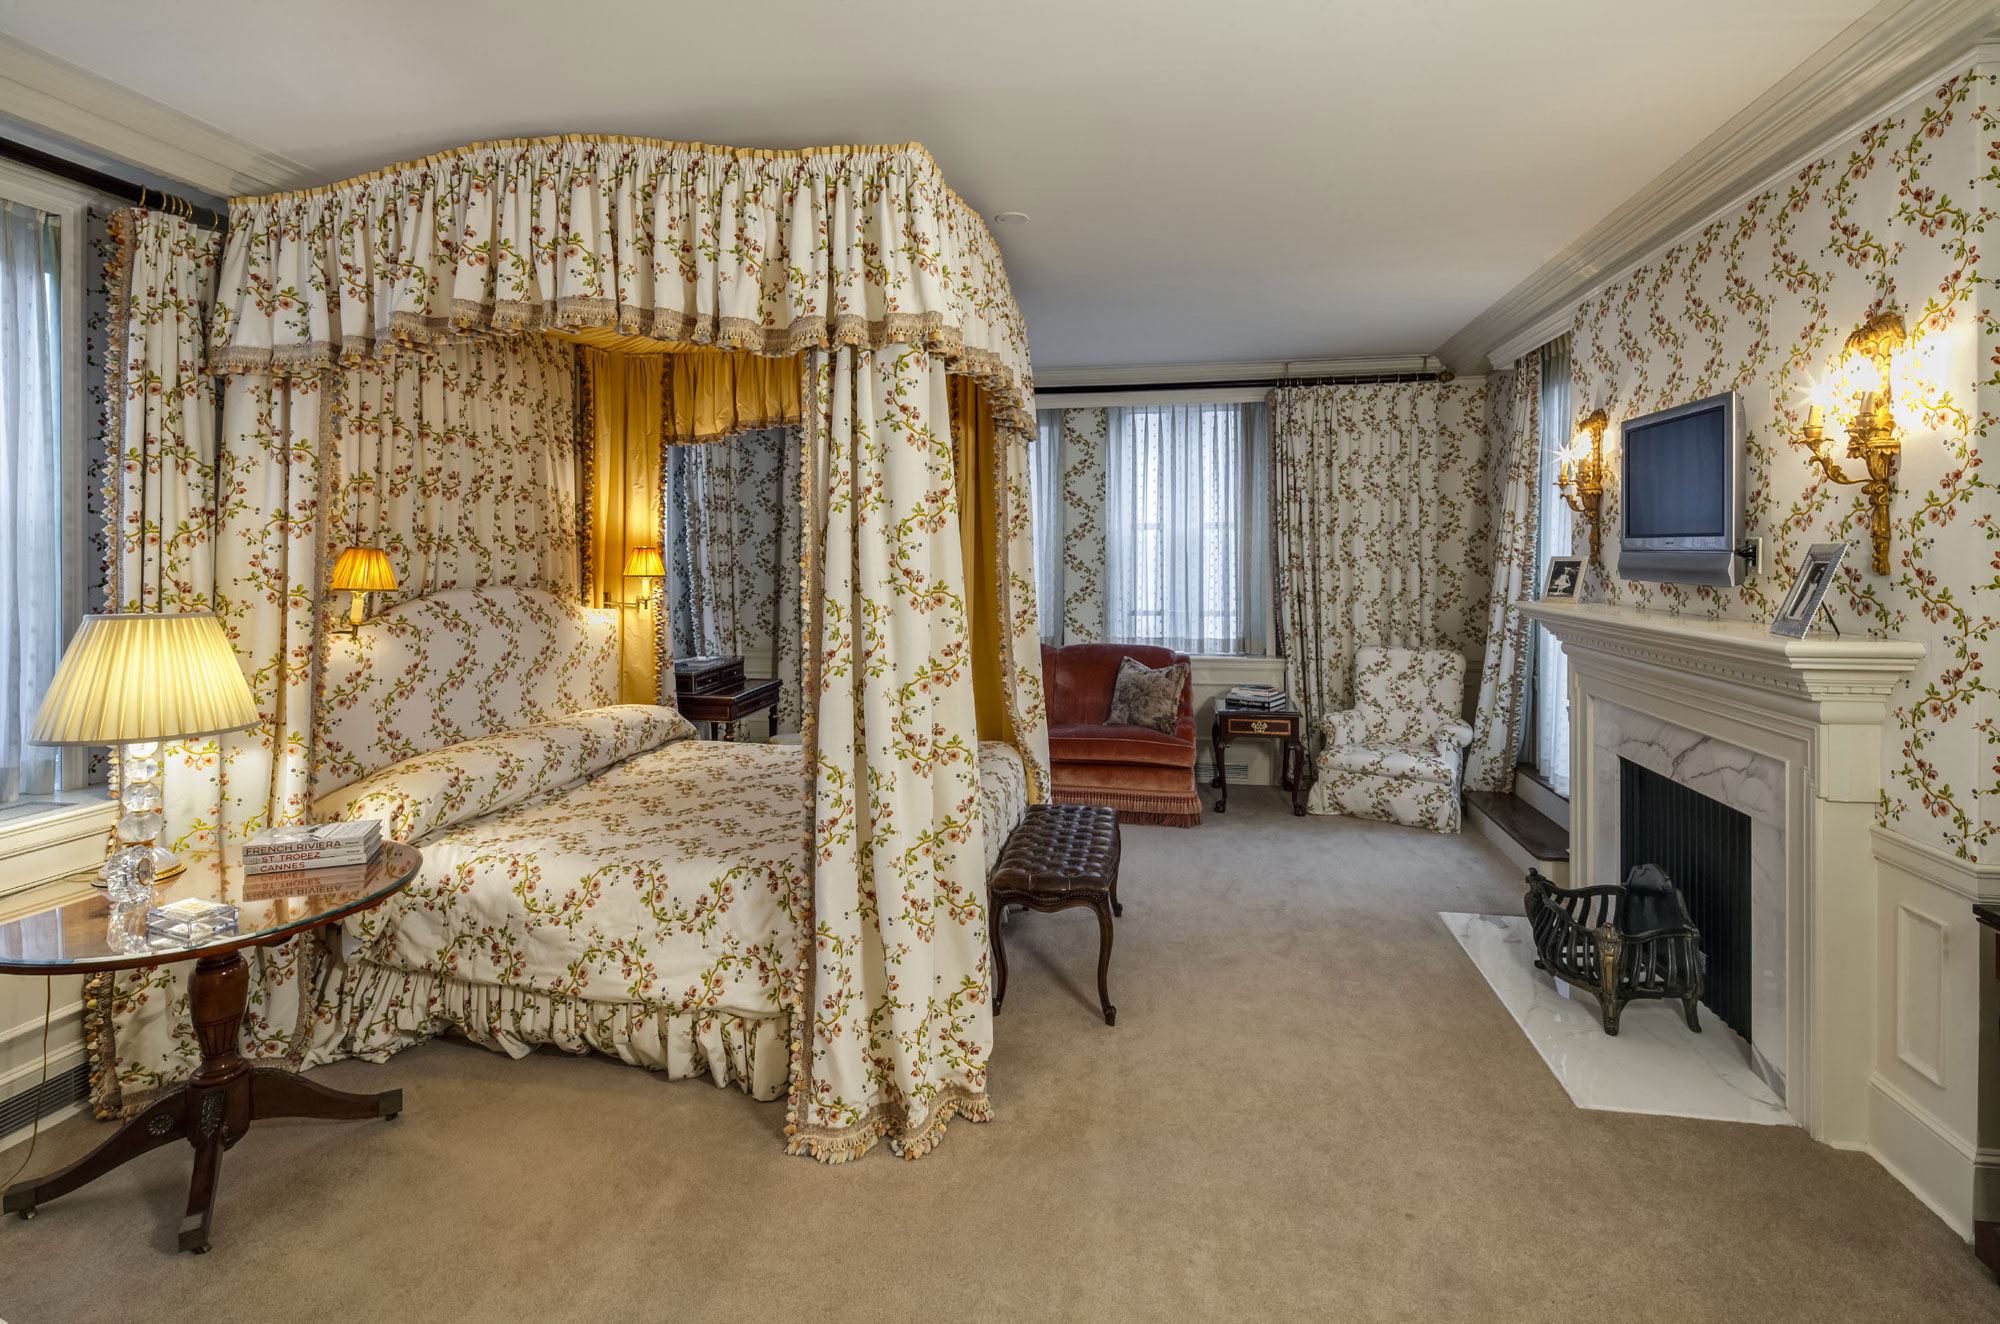 In the bedroom wing, which is carefully disguised from the gallery, three beautifully appointed guest bedrooms each have access to the south-facing terrace. The enormous master suite has two bathrooms and its own terrace facing Central Park.